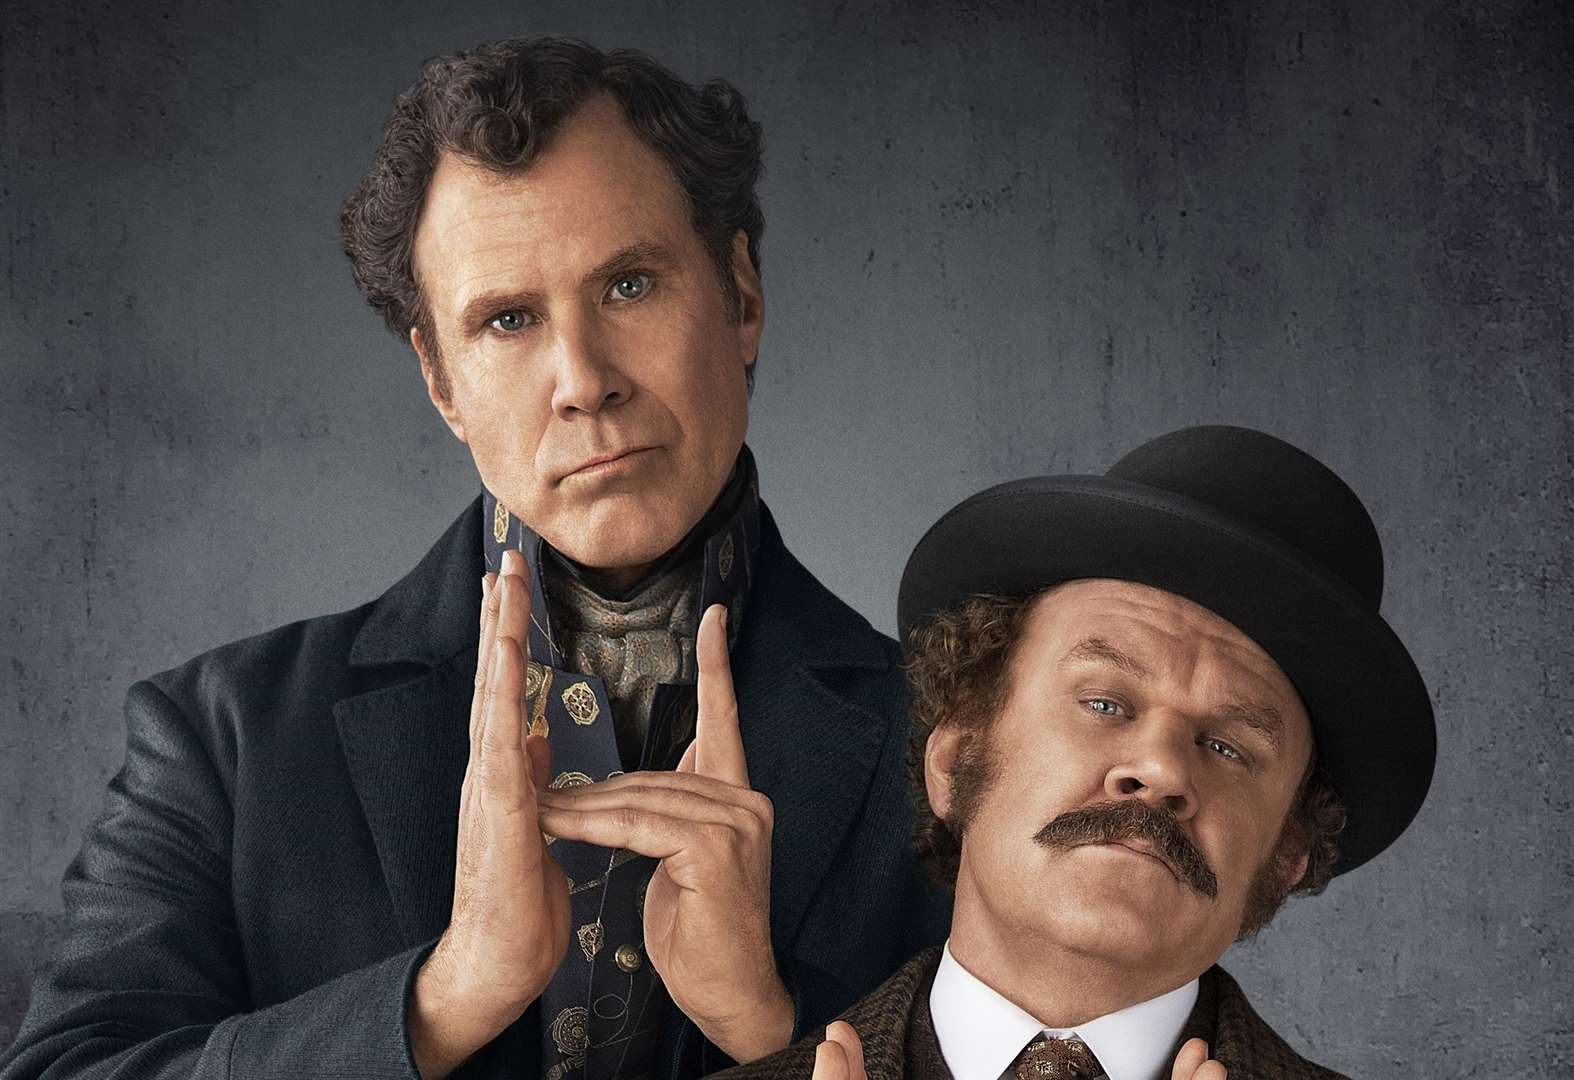 REVIEW: Ferrell funny as ever in Holmes' latest outing